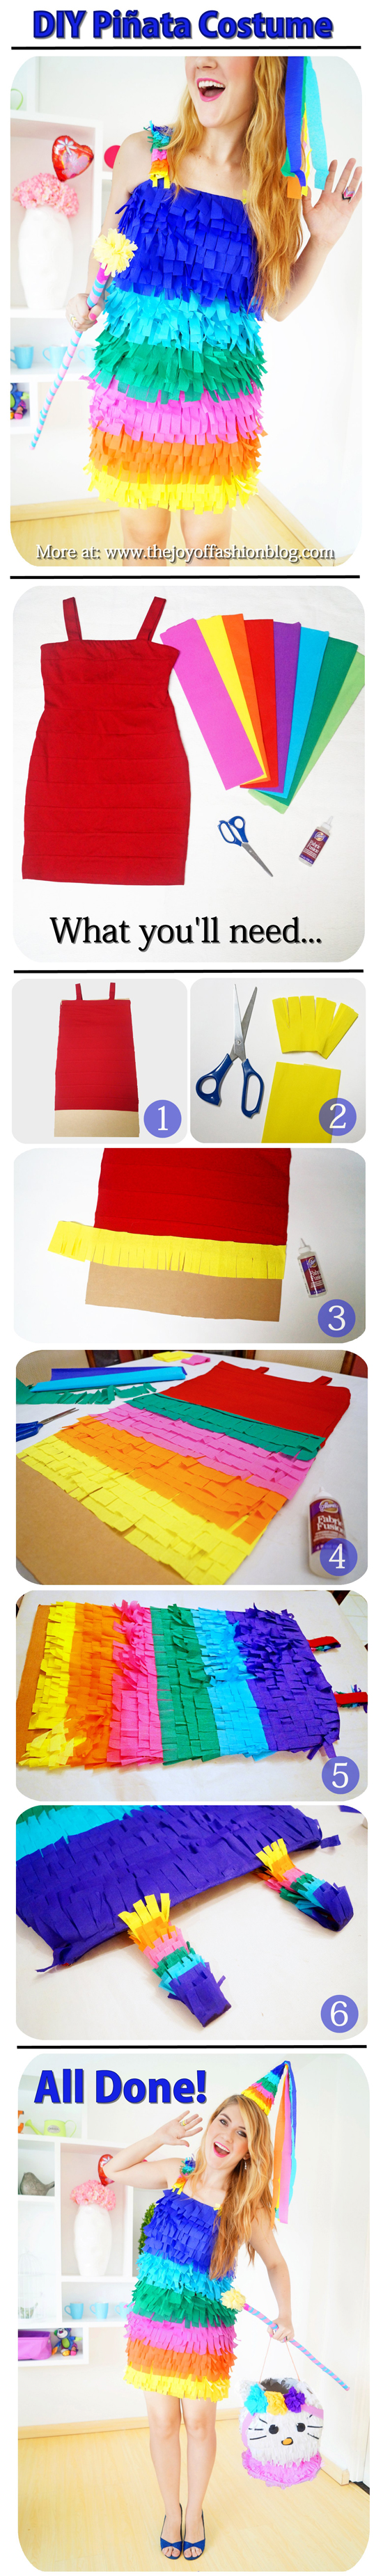 Piñata Costume Tutorial